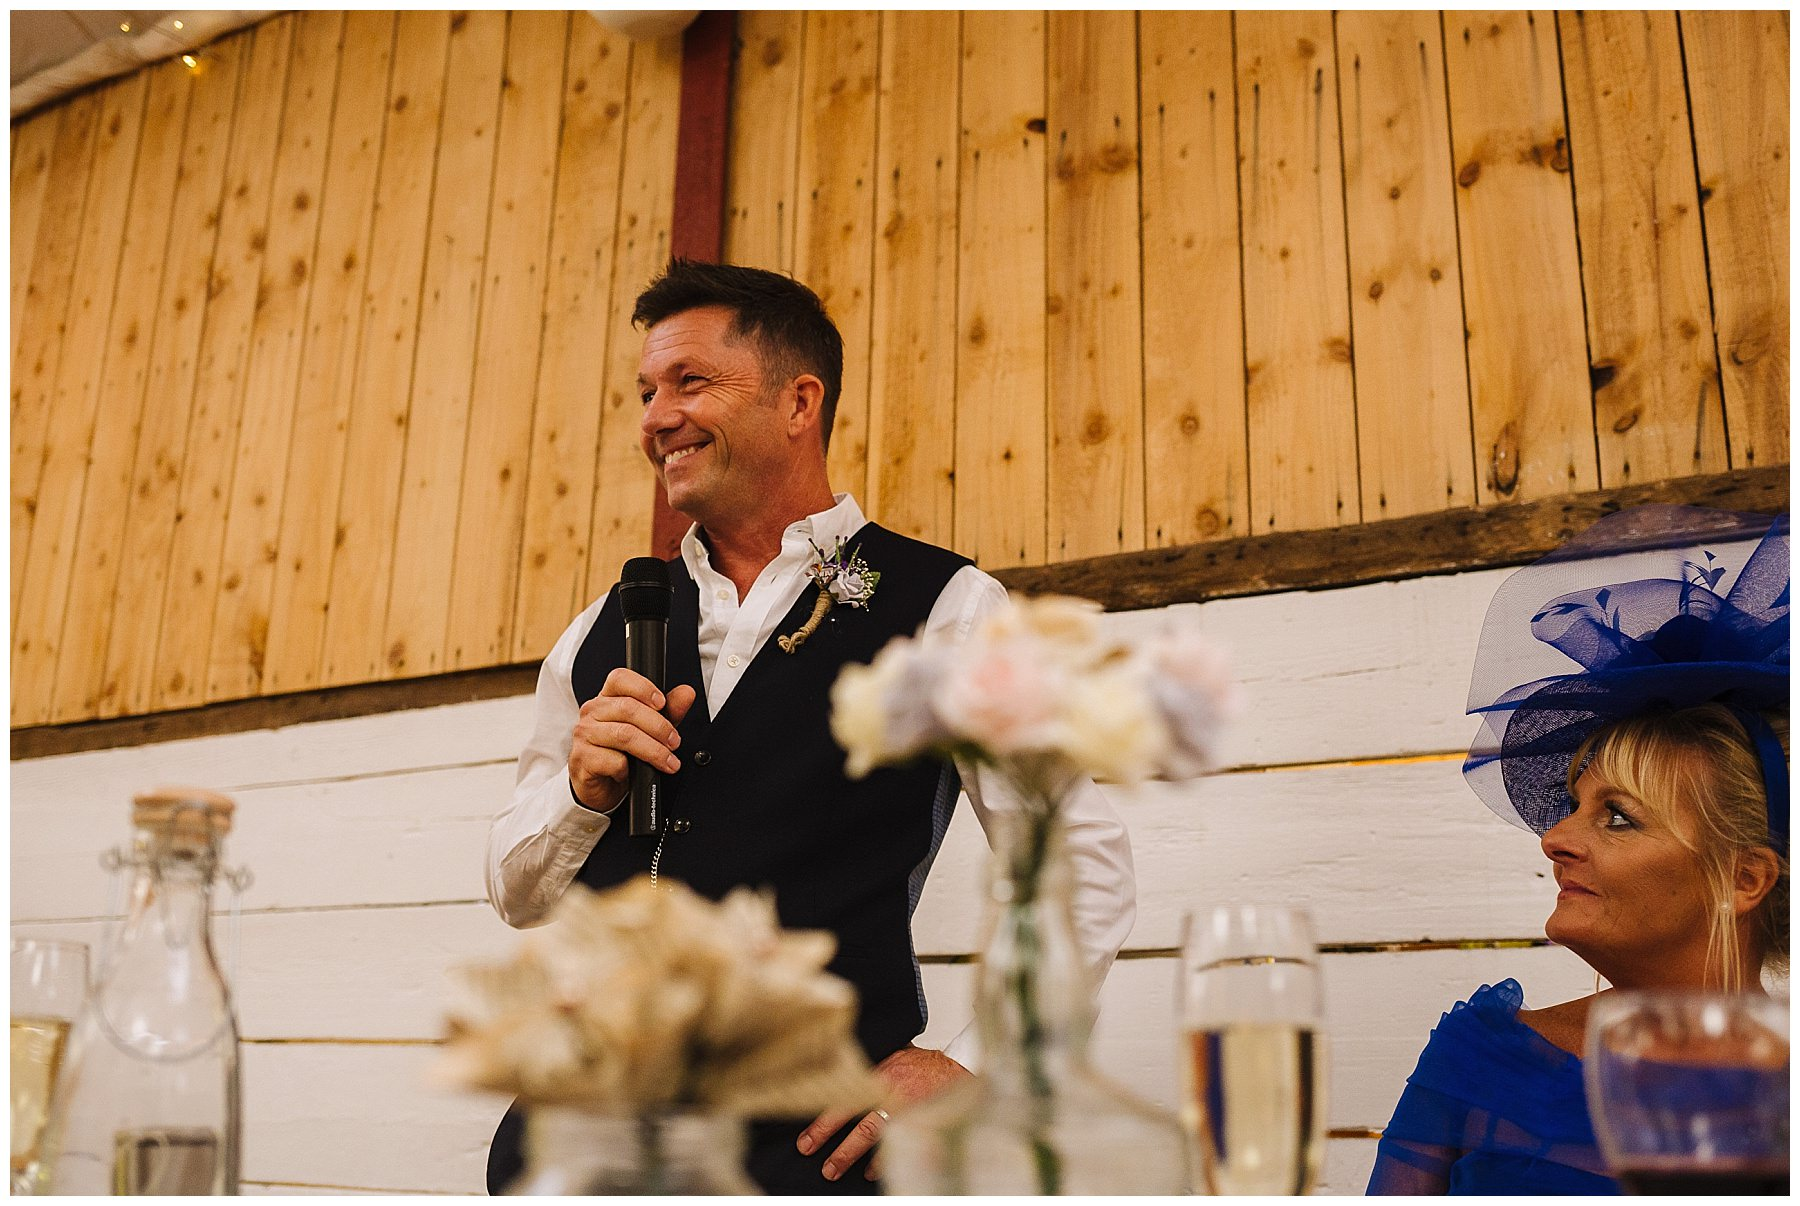 Father of the bride stands proud to speak at daughters wedding